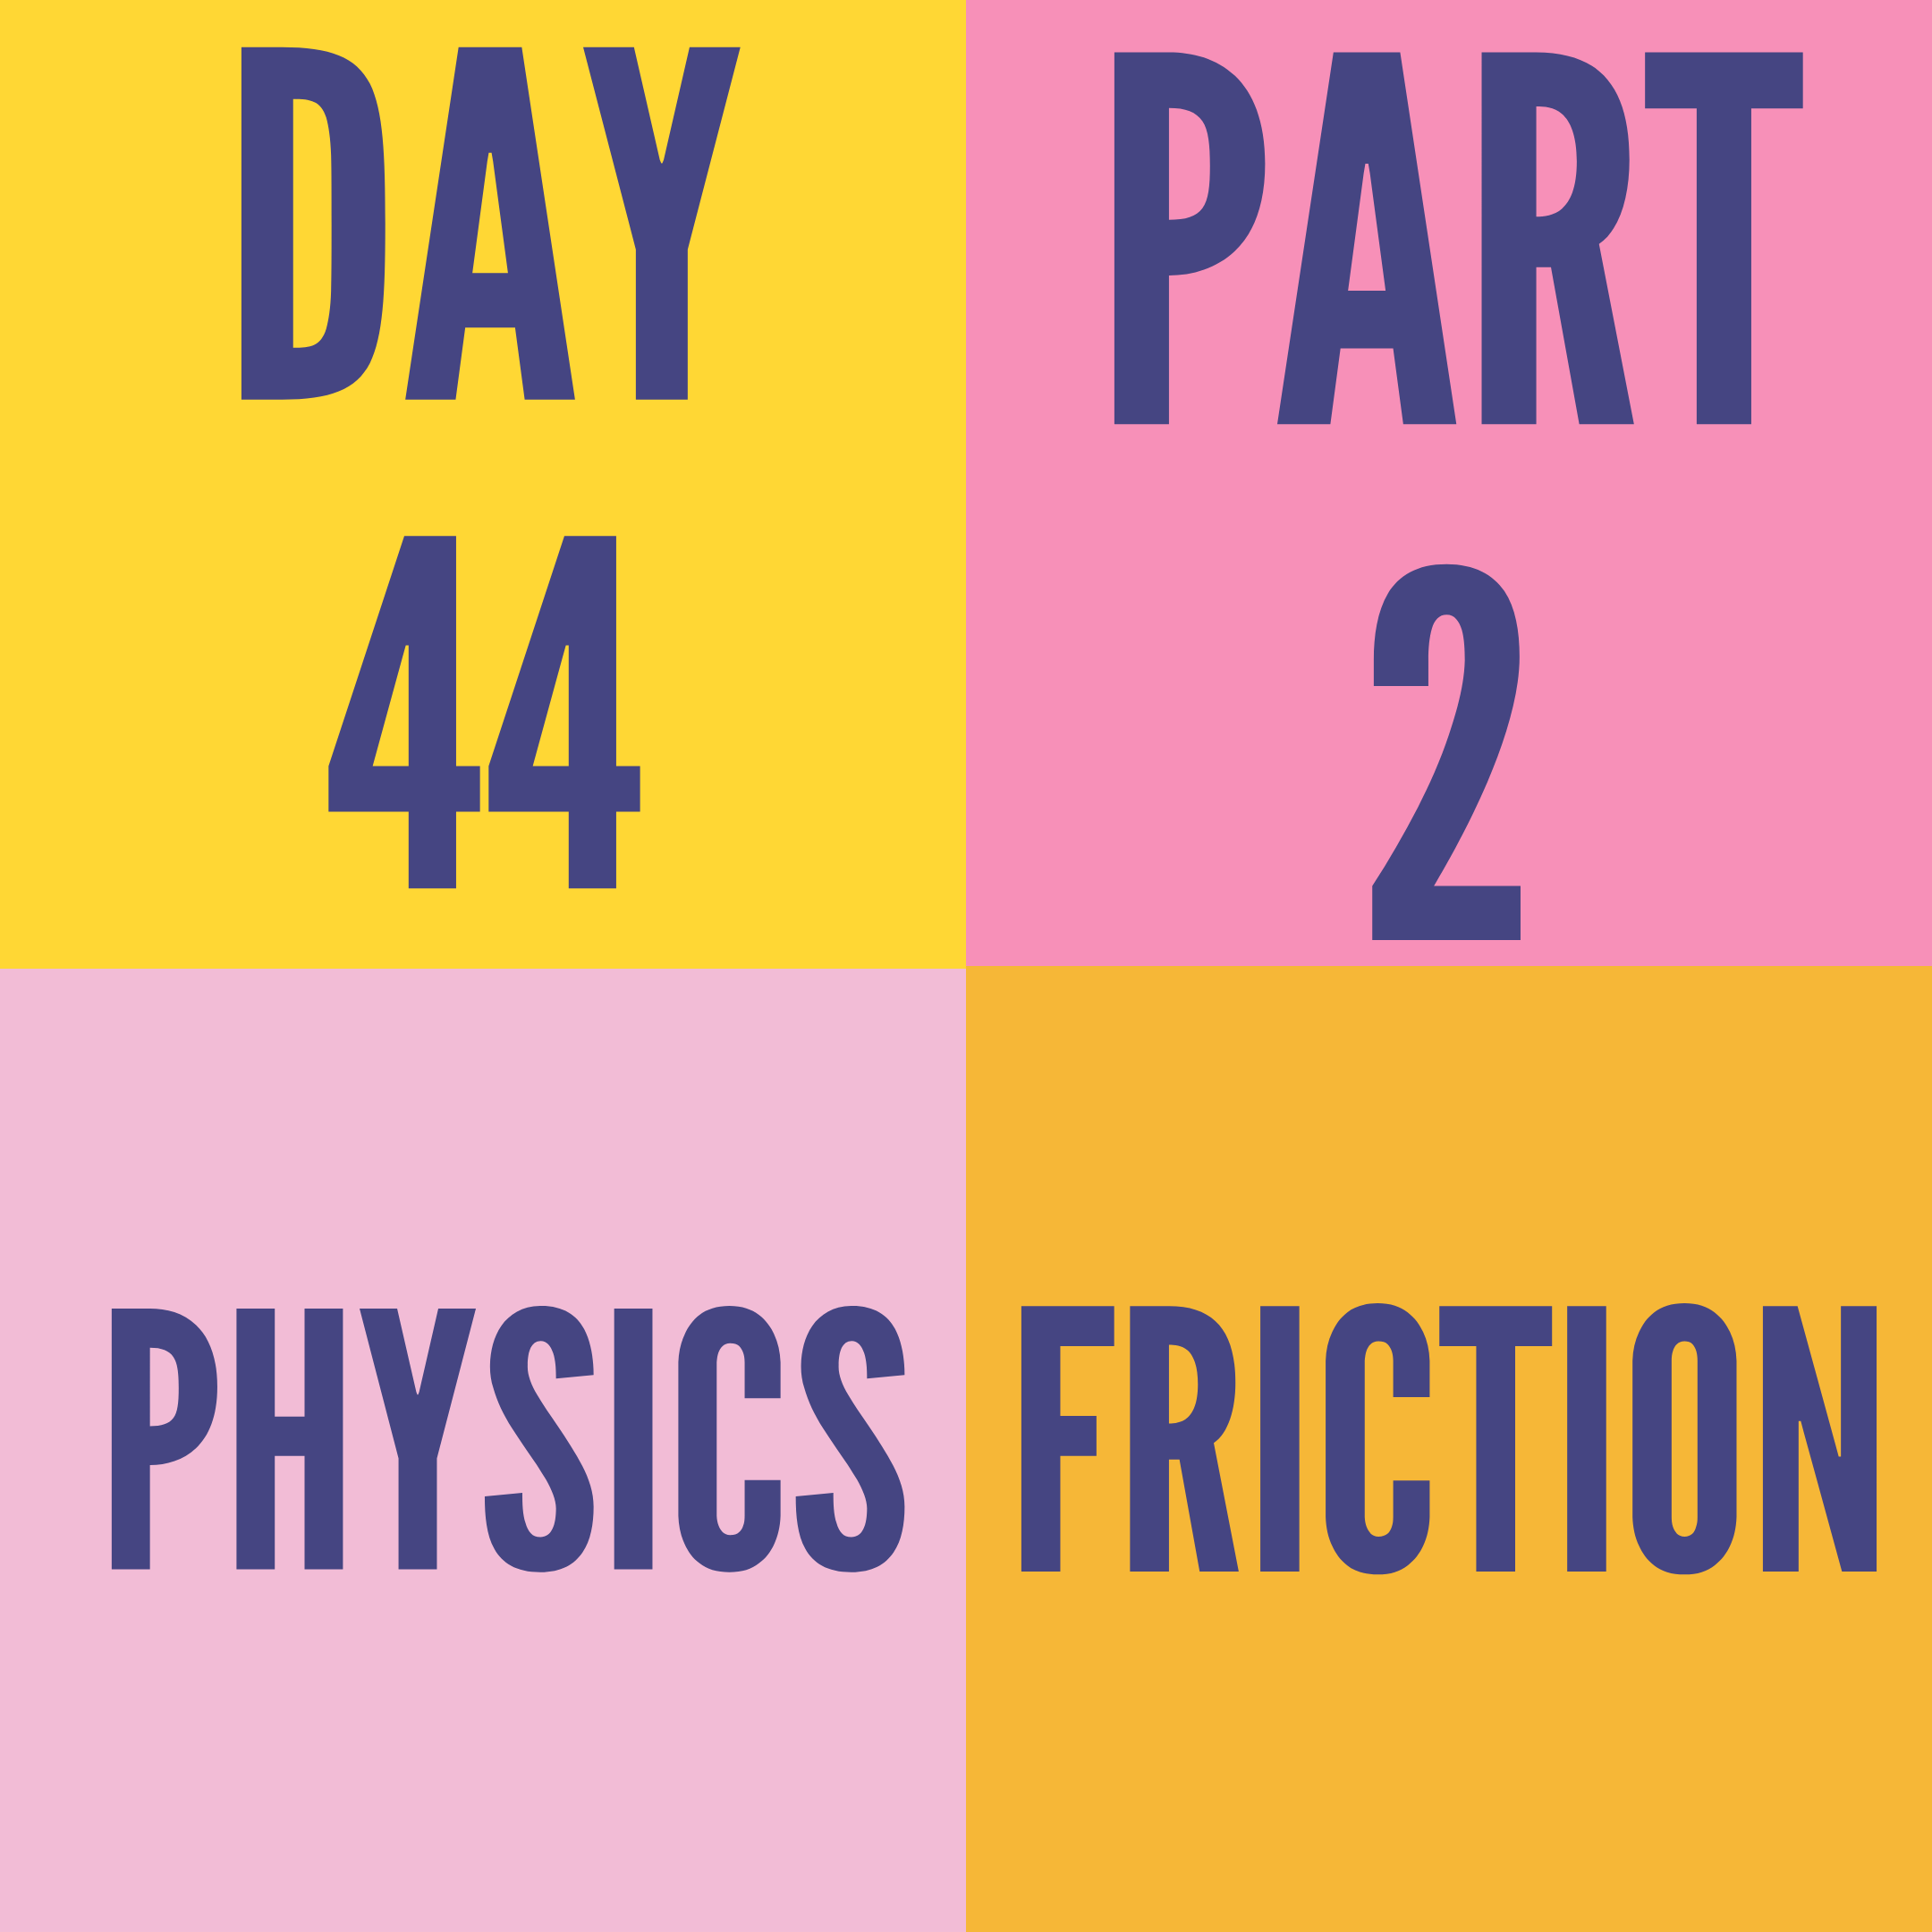 DAY-44 PART-2 FRICTION